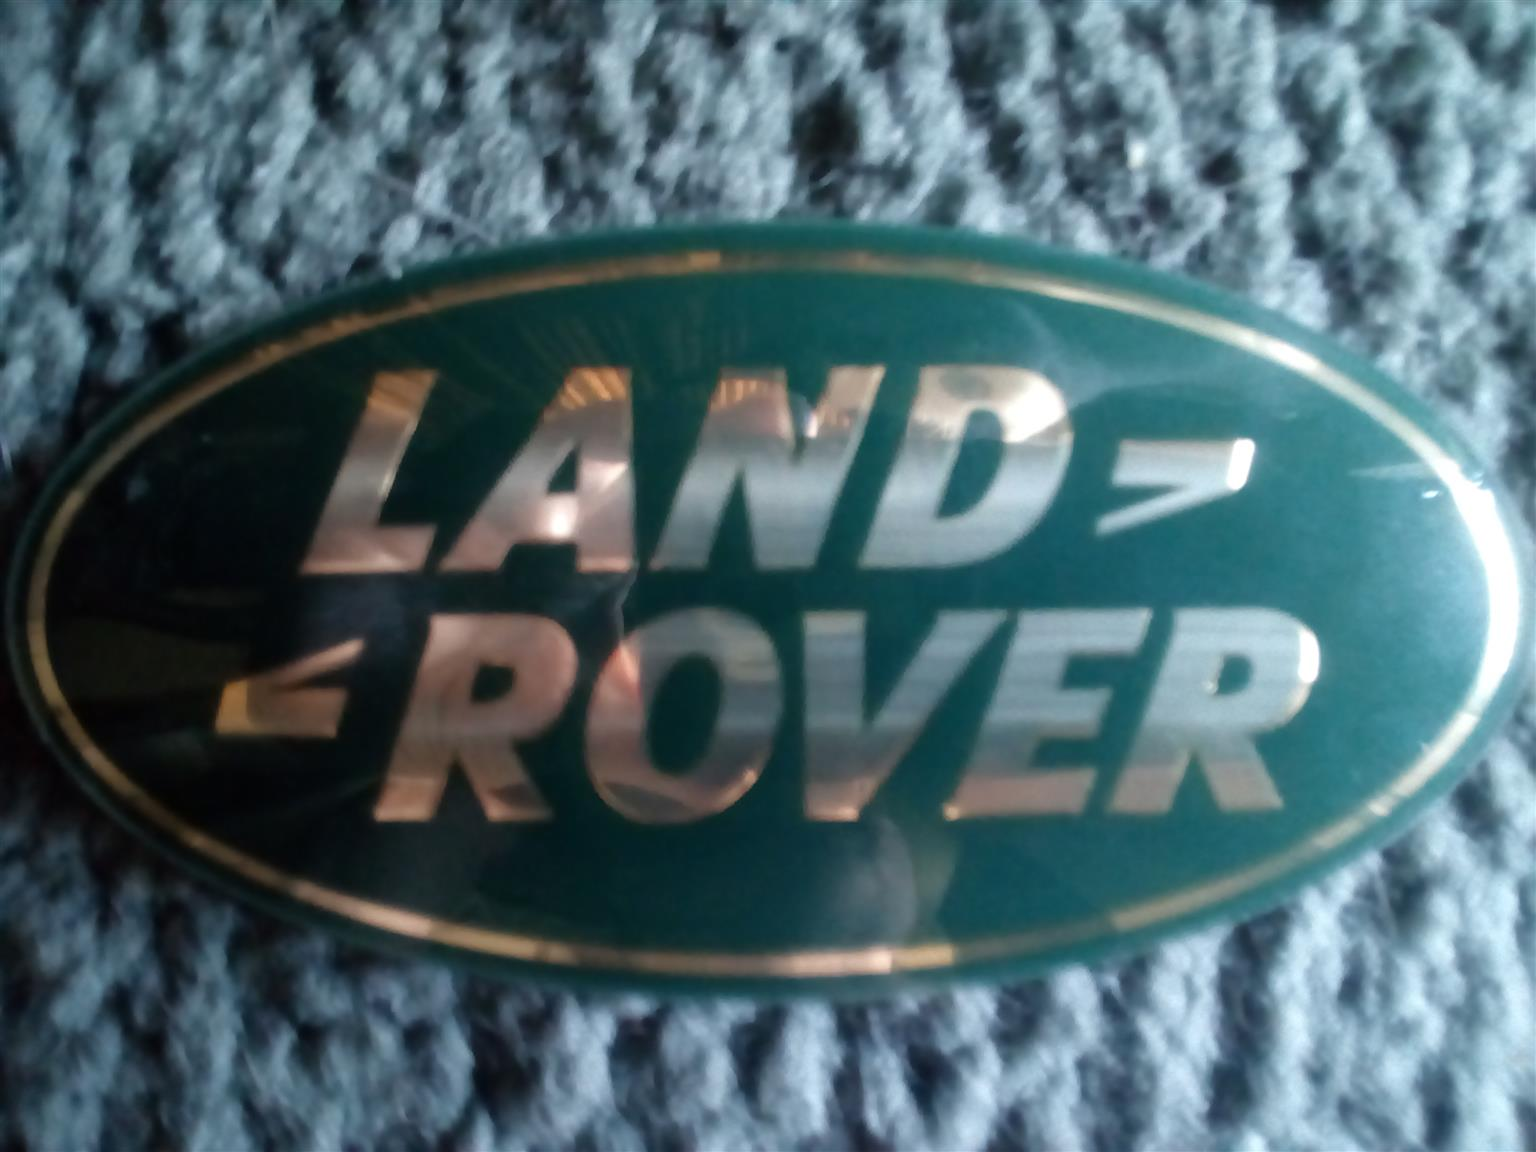 Land Rover Gold And Green Emblem Badge For Grille Junk Mail